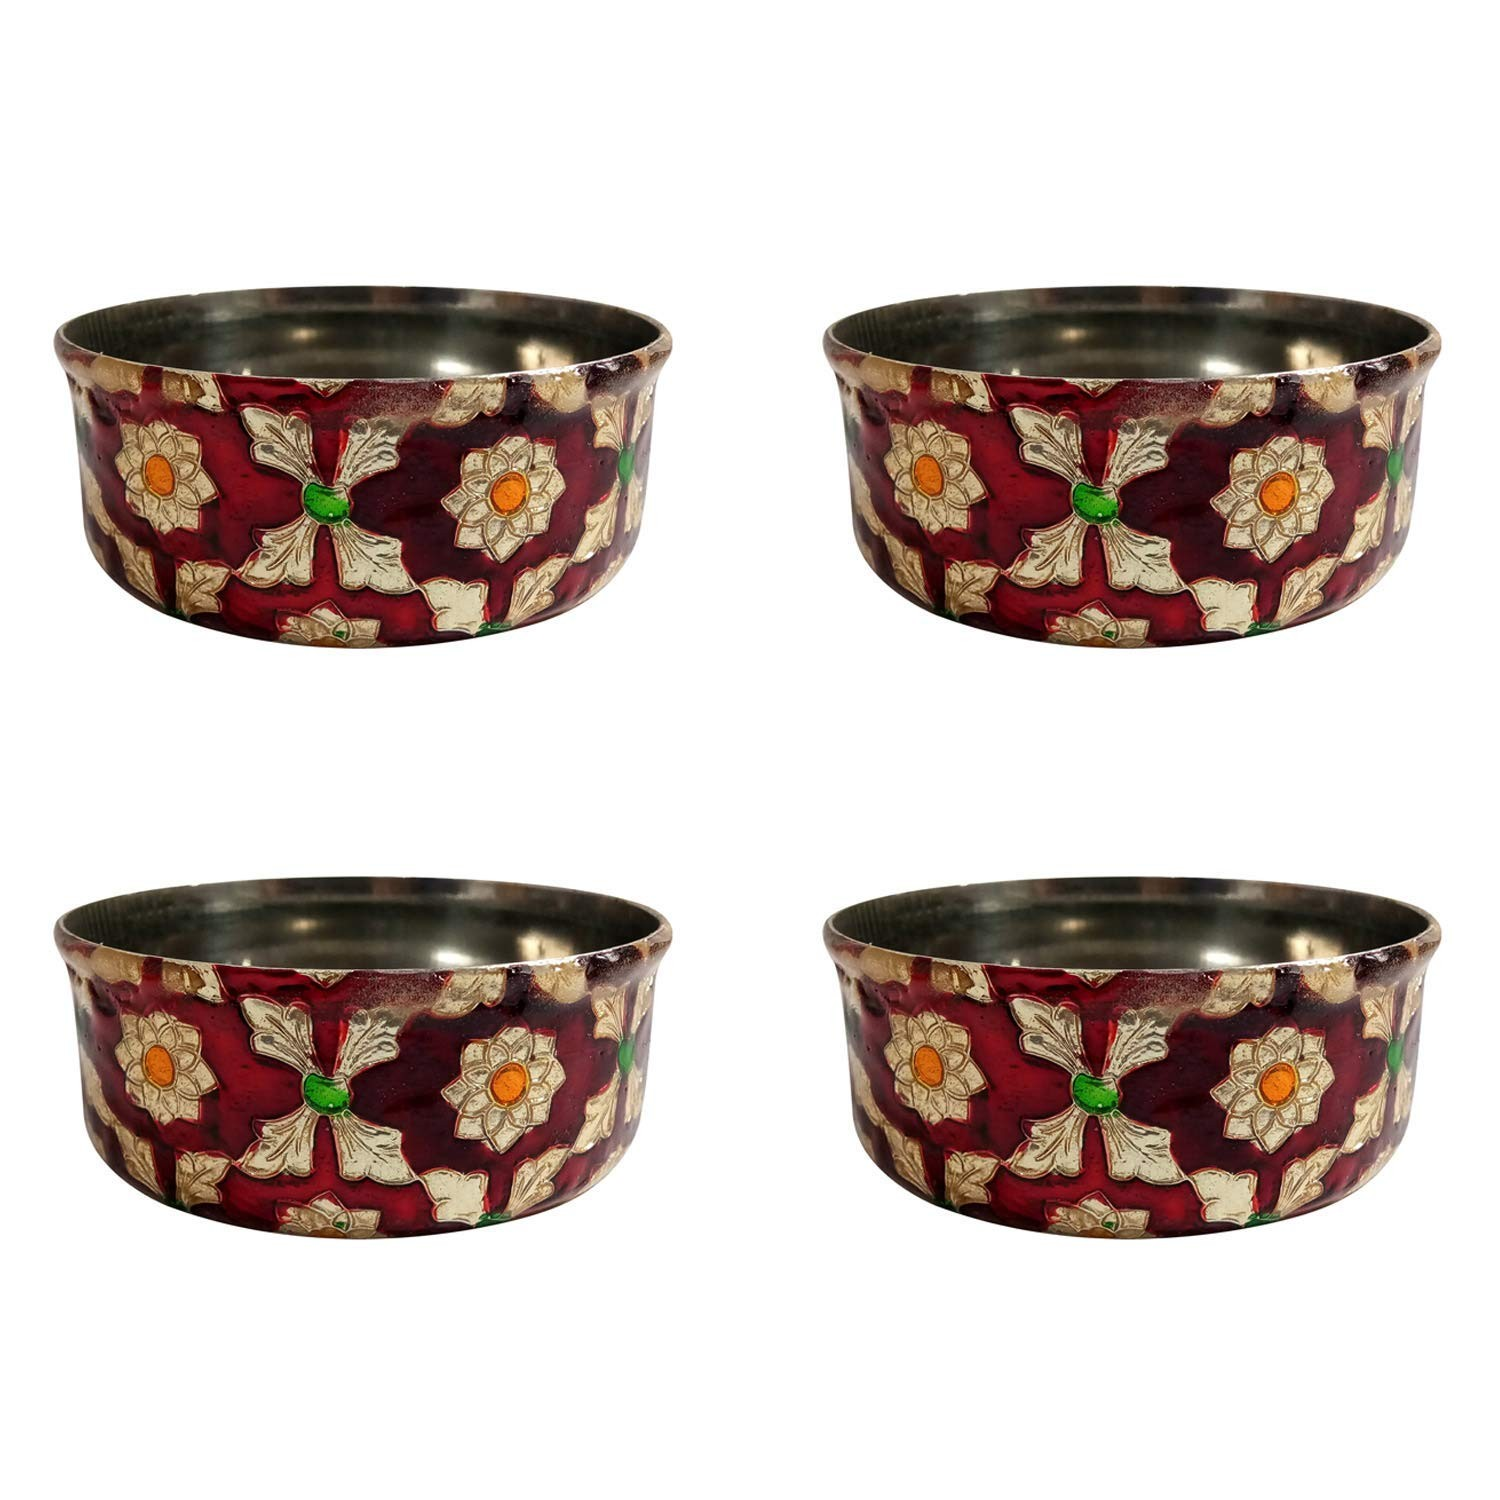 Handcrafted Stainless Steel Meenakari Art (MA) set of 4 Bowl By Rural Awarded Artisans.